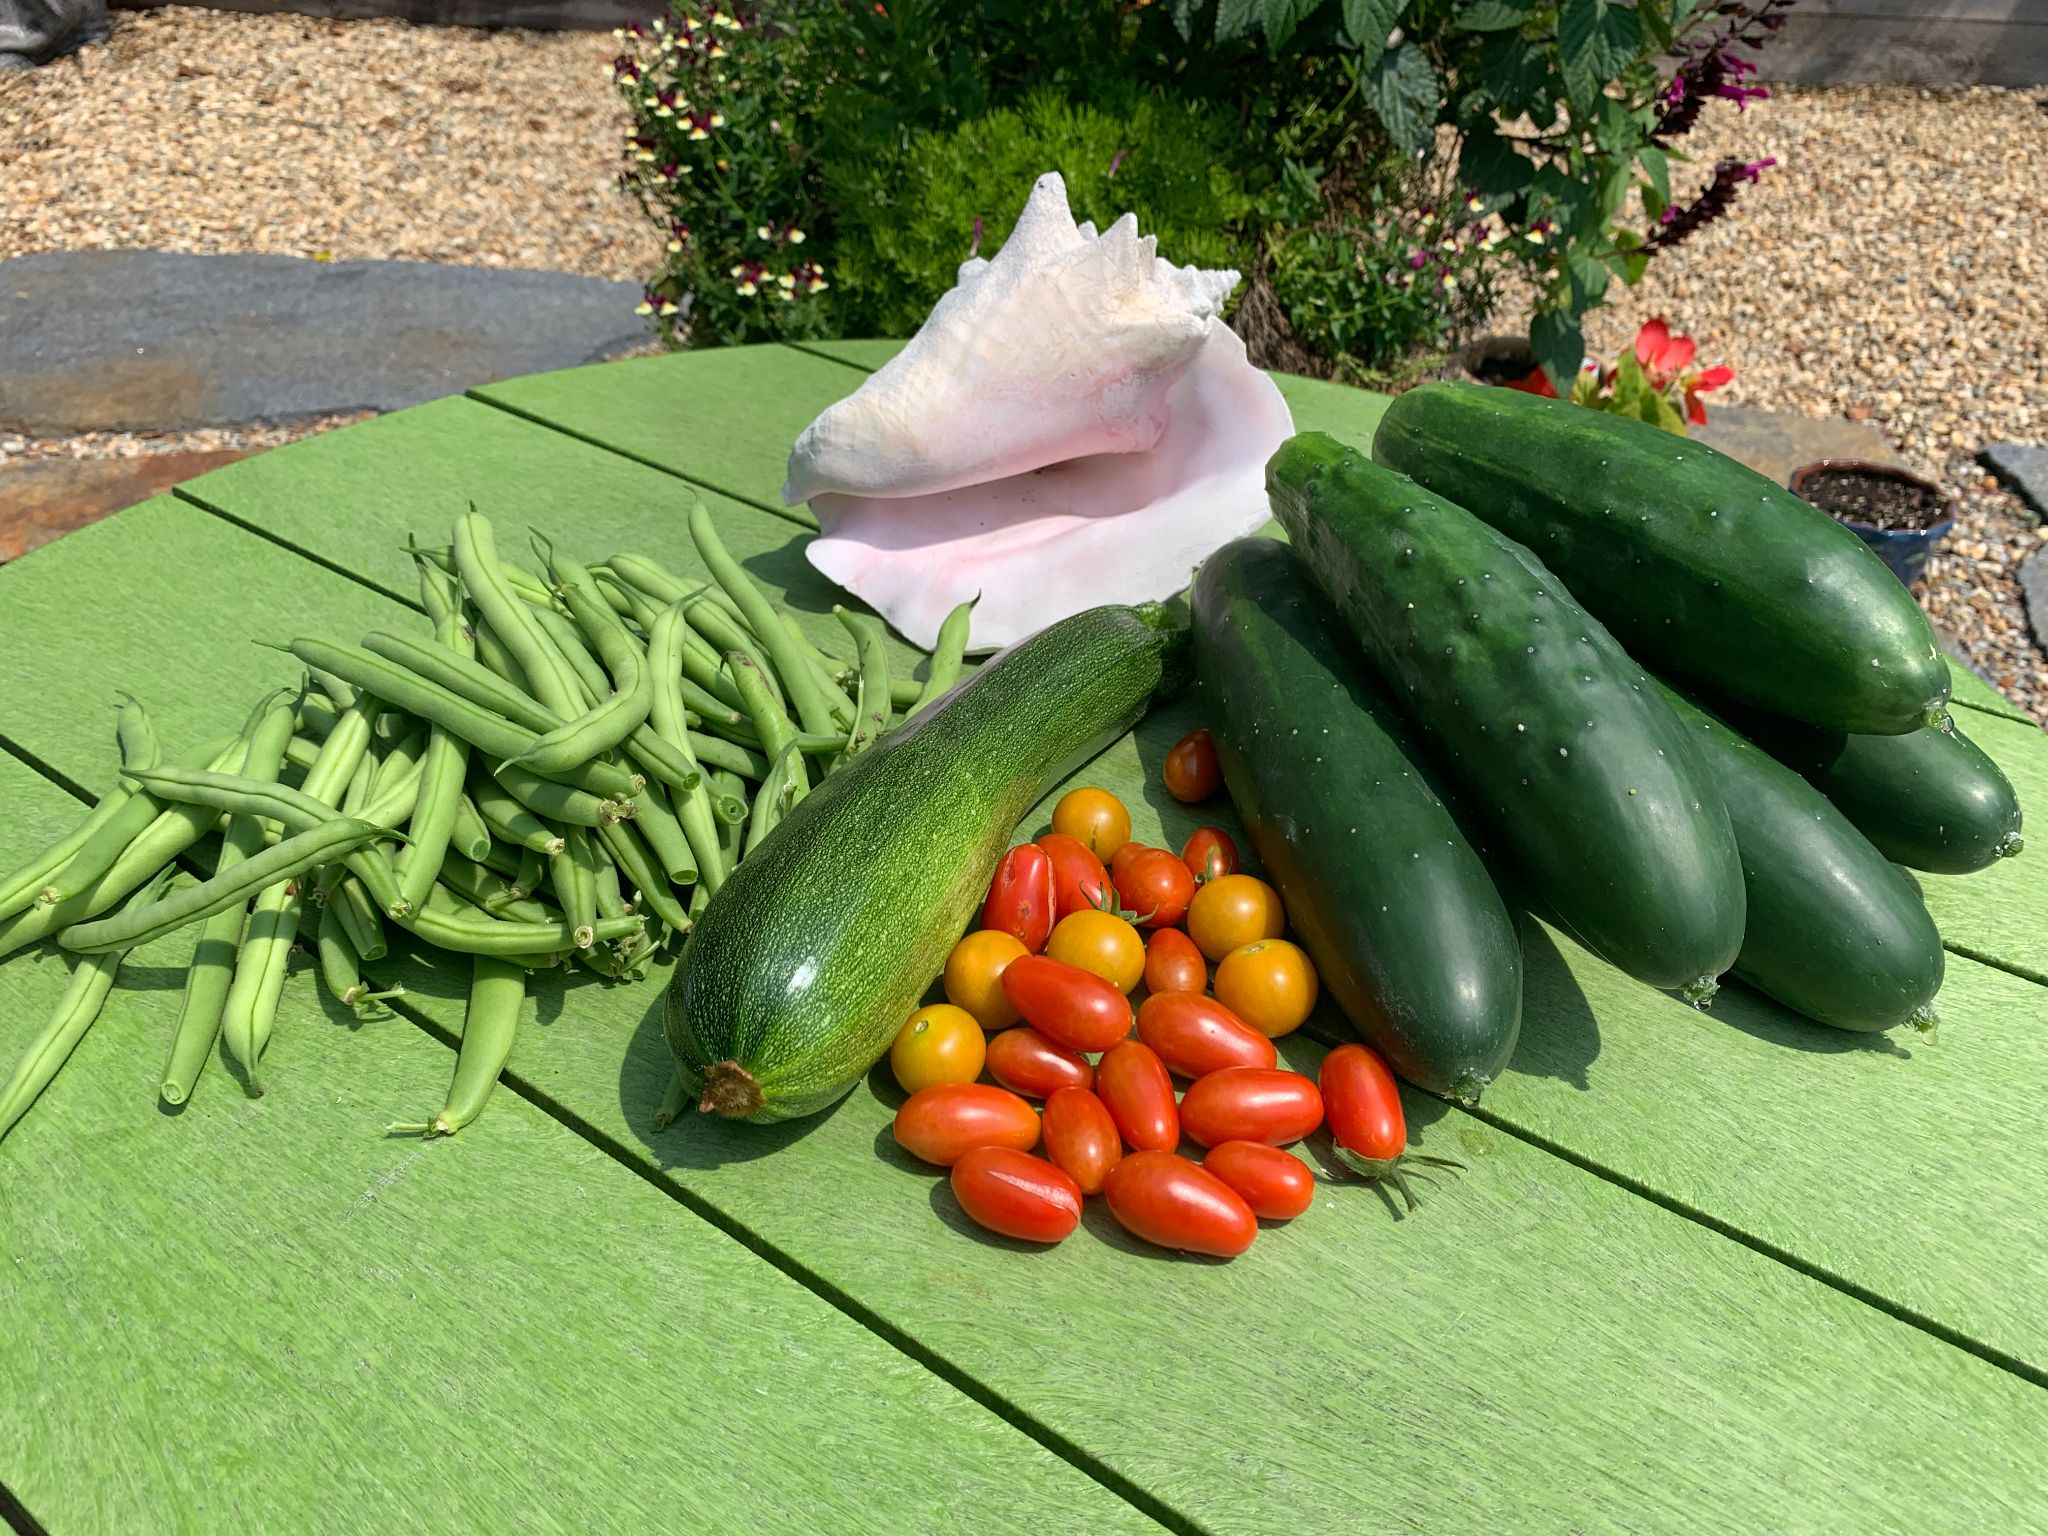 The 6 environmental and health benefits of growing your own food